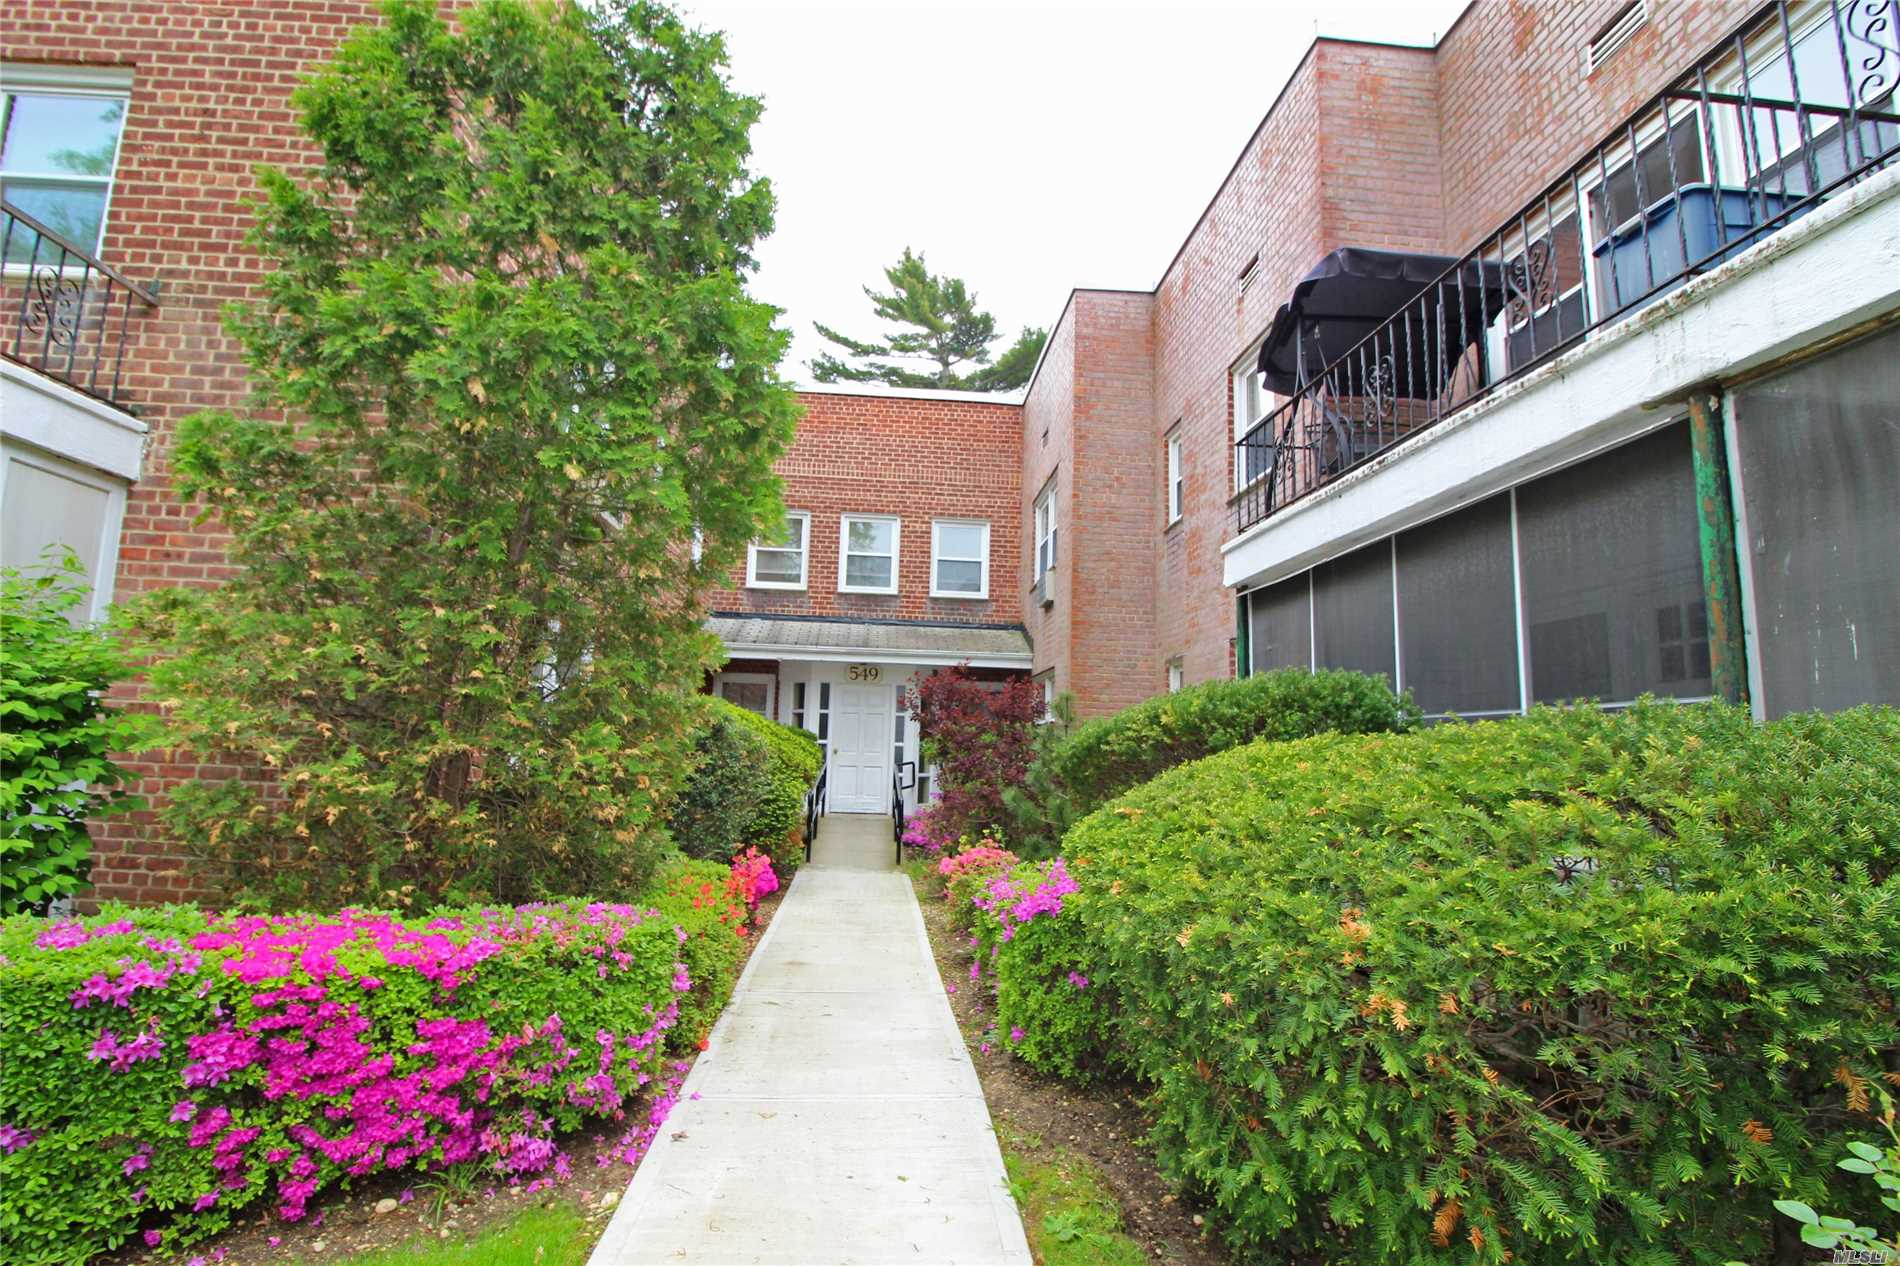 Updated First Floor Apartment In The Center Of Cedarhurst. New Kitchen With Washer/Dryer Hook Up. Large One Bedroom With Enclosed Porch That Can Be Used As A Second Bedroom. X Large Living Room And Dining Room. Close To All! Low Maintenance. Move Right In!